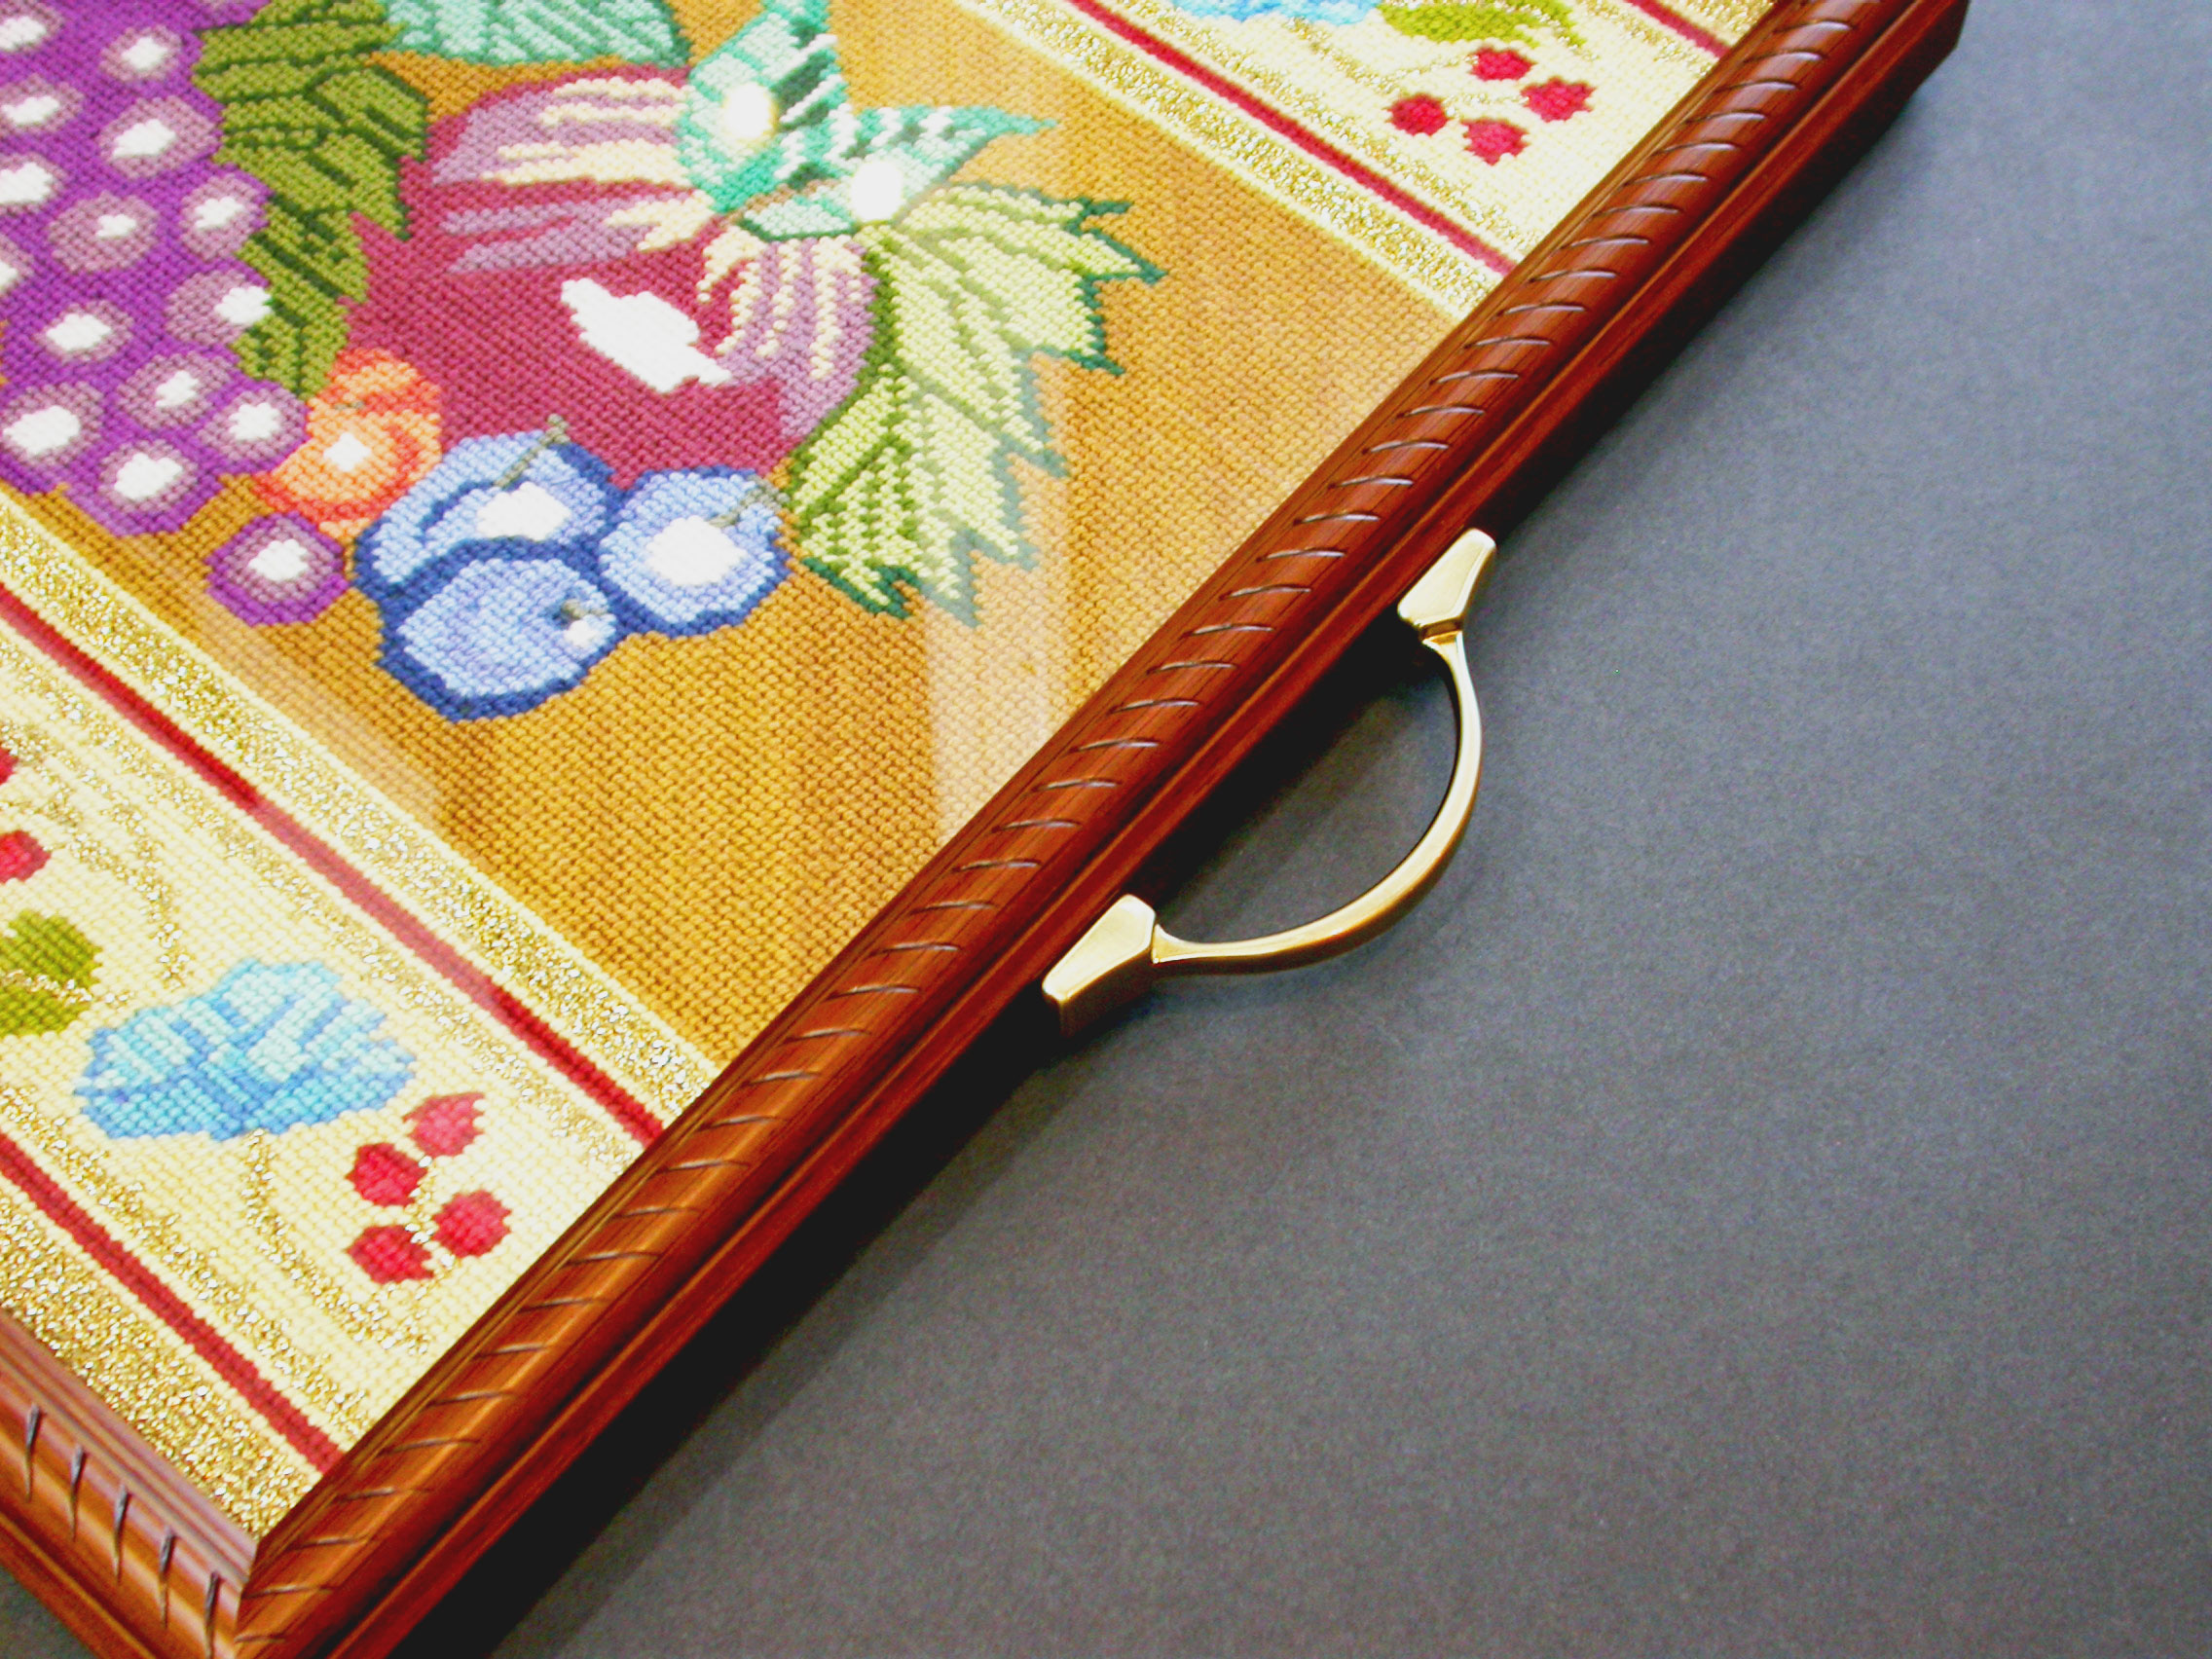 Needlepoint-Tray-handle-9588.jpg